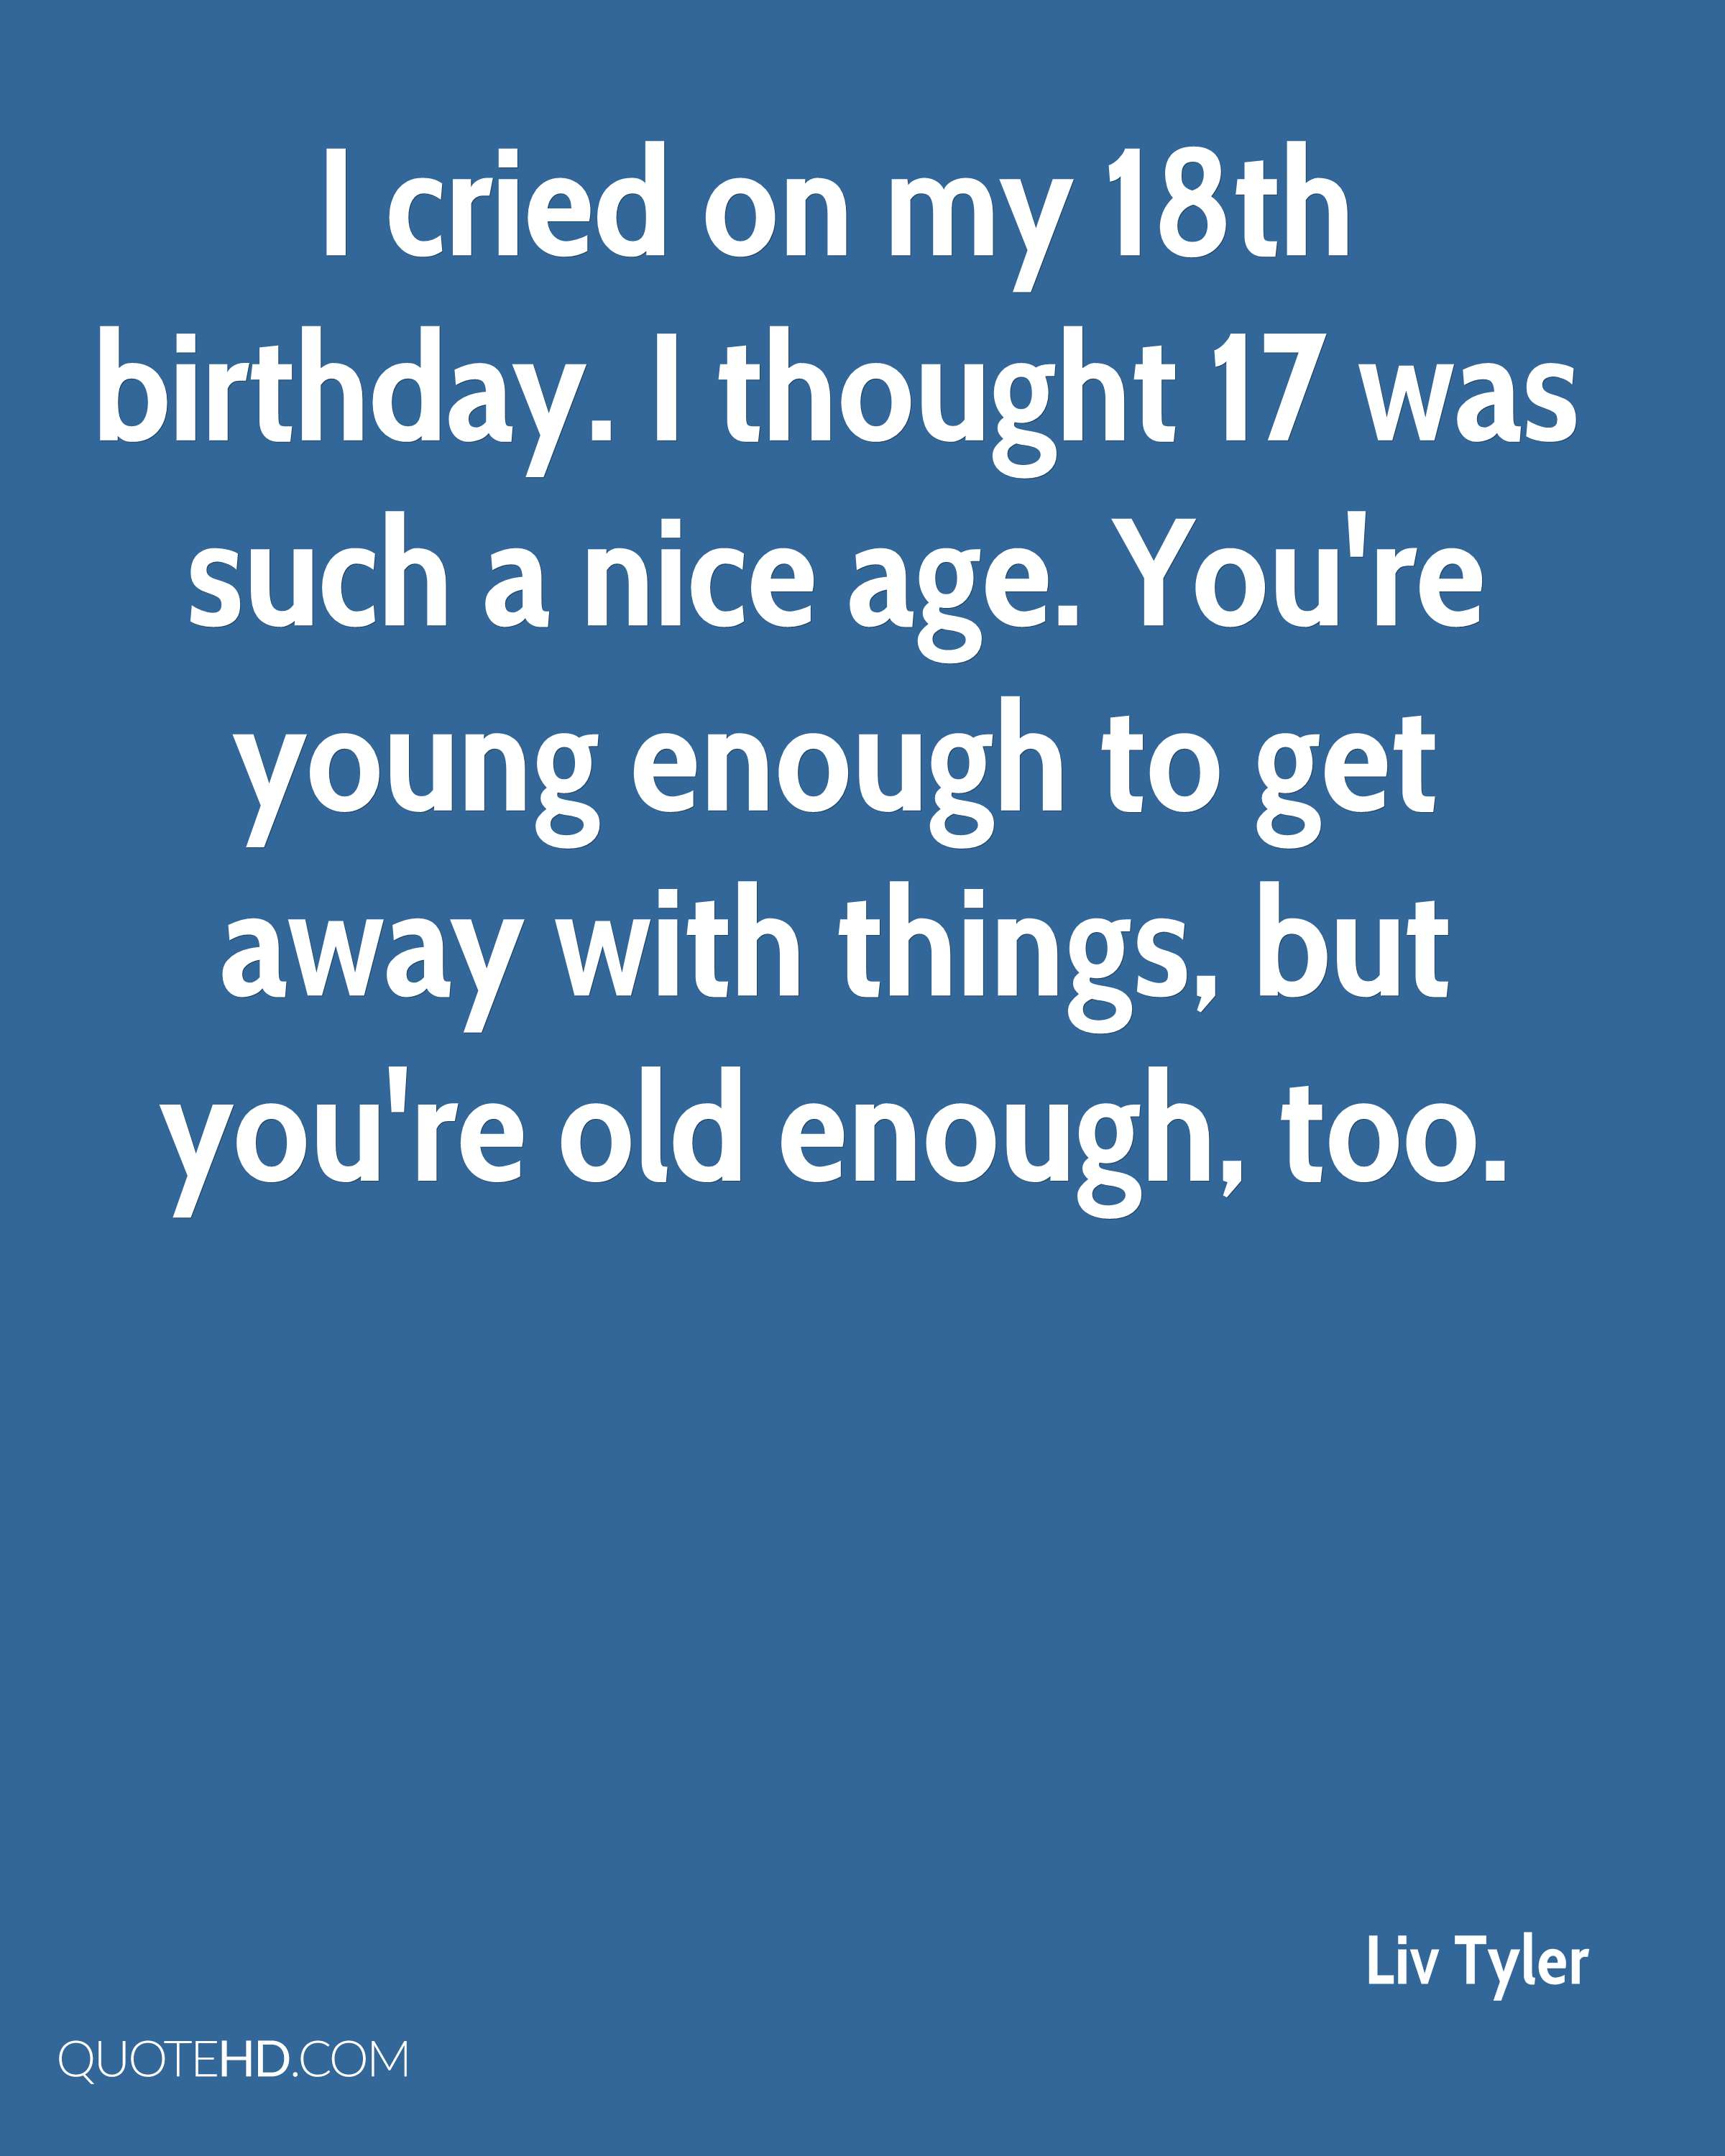 Quotes 18Th Birthday Liv Tyler Birthday Quotes  Quotehd